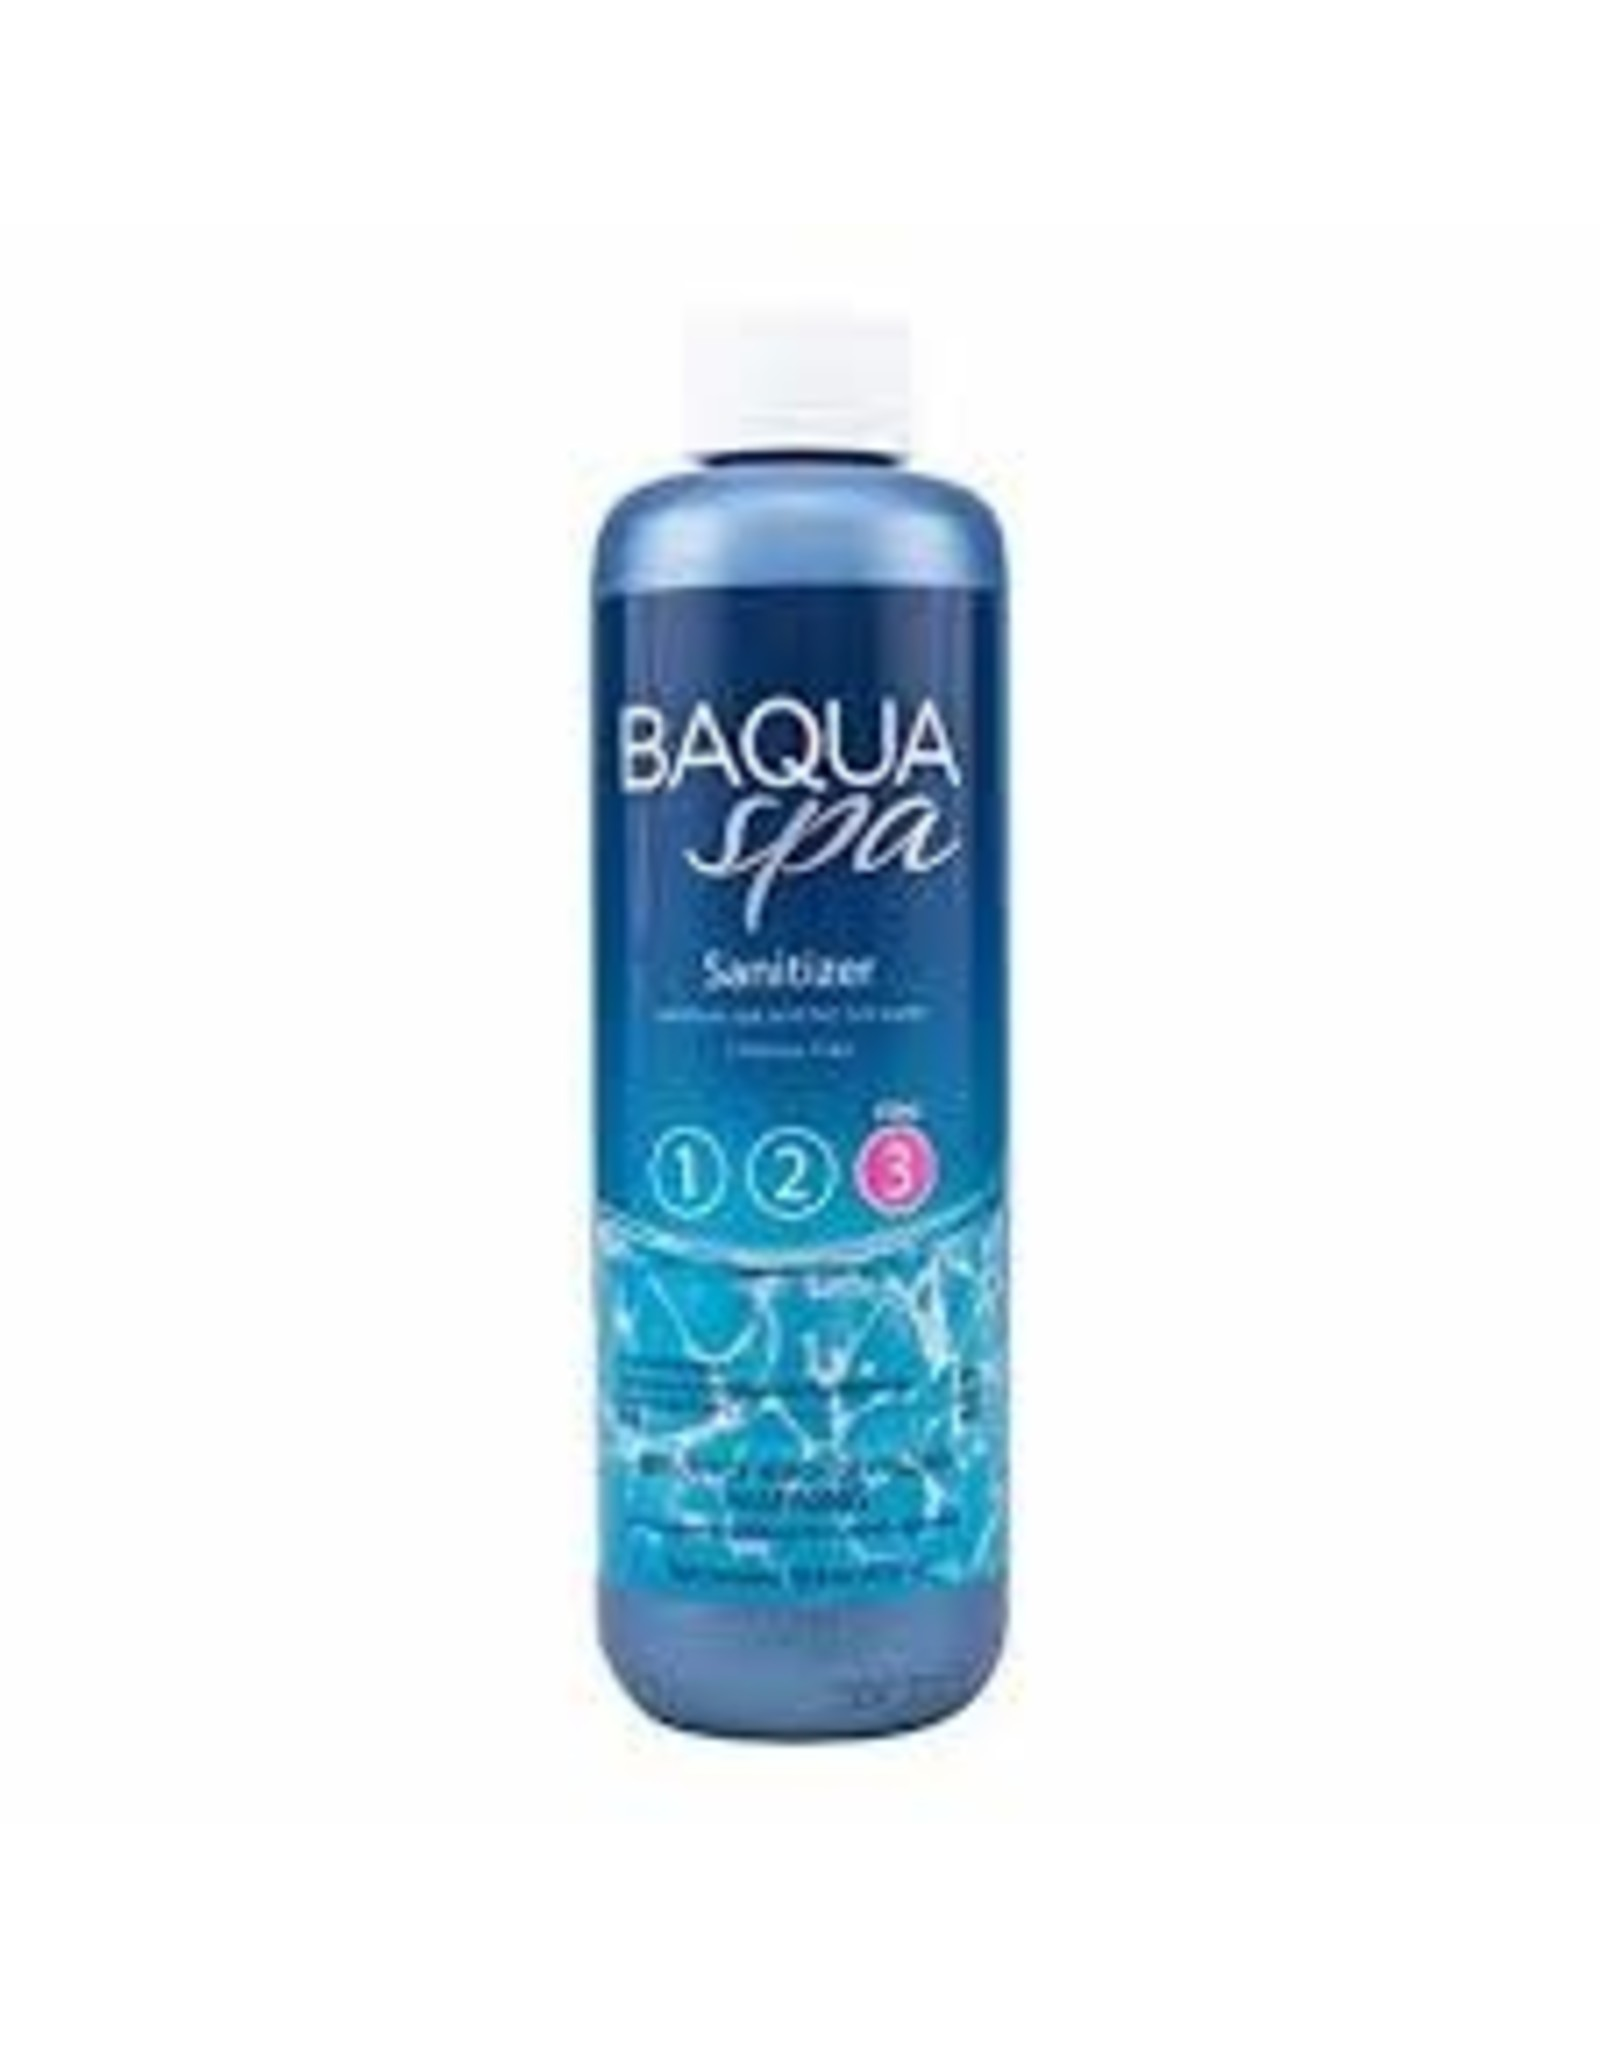 Baqua Sanitizer #3